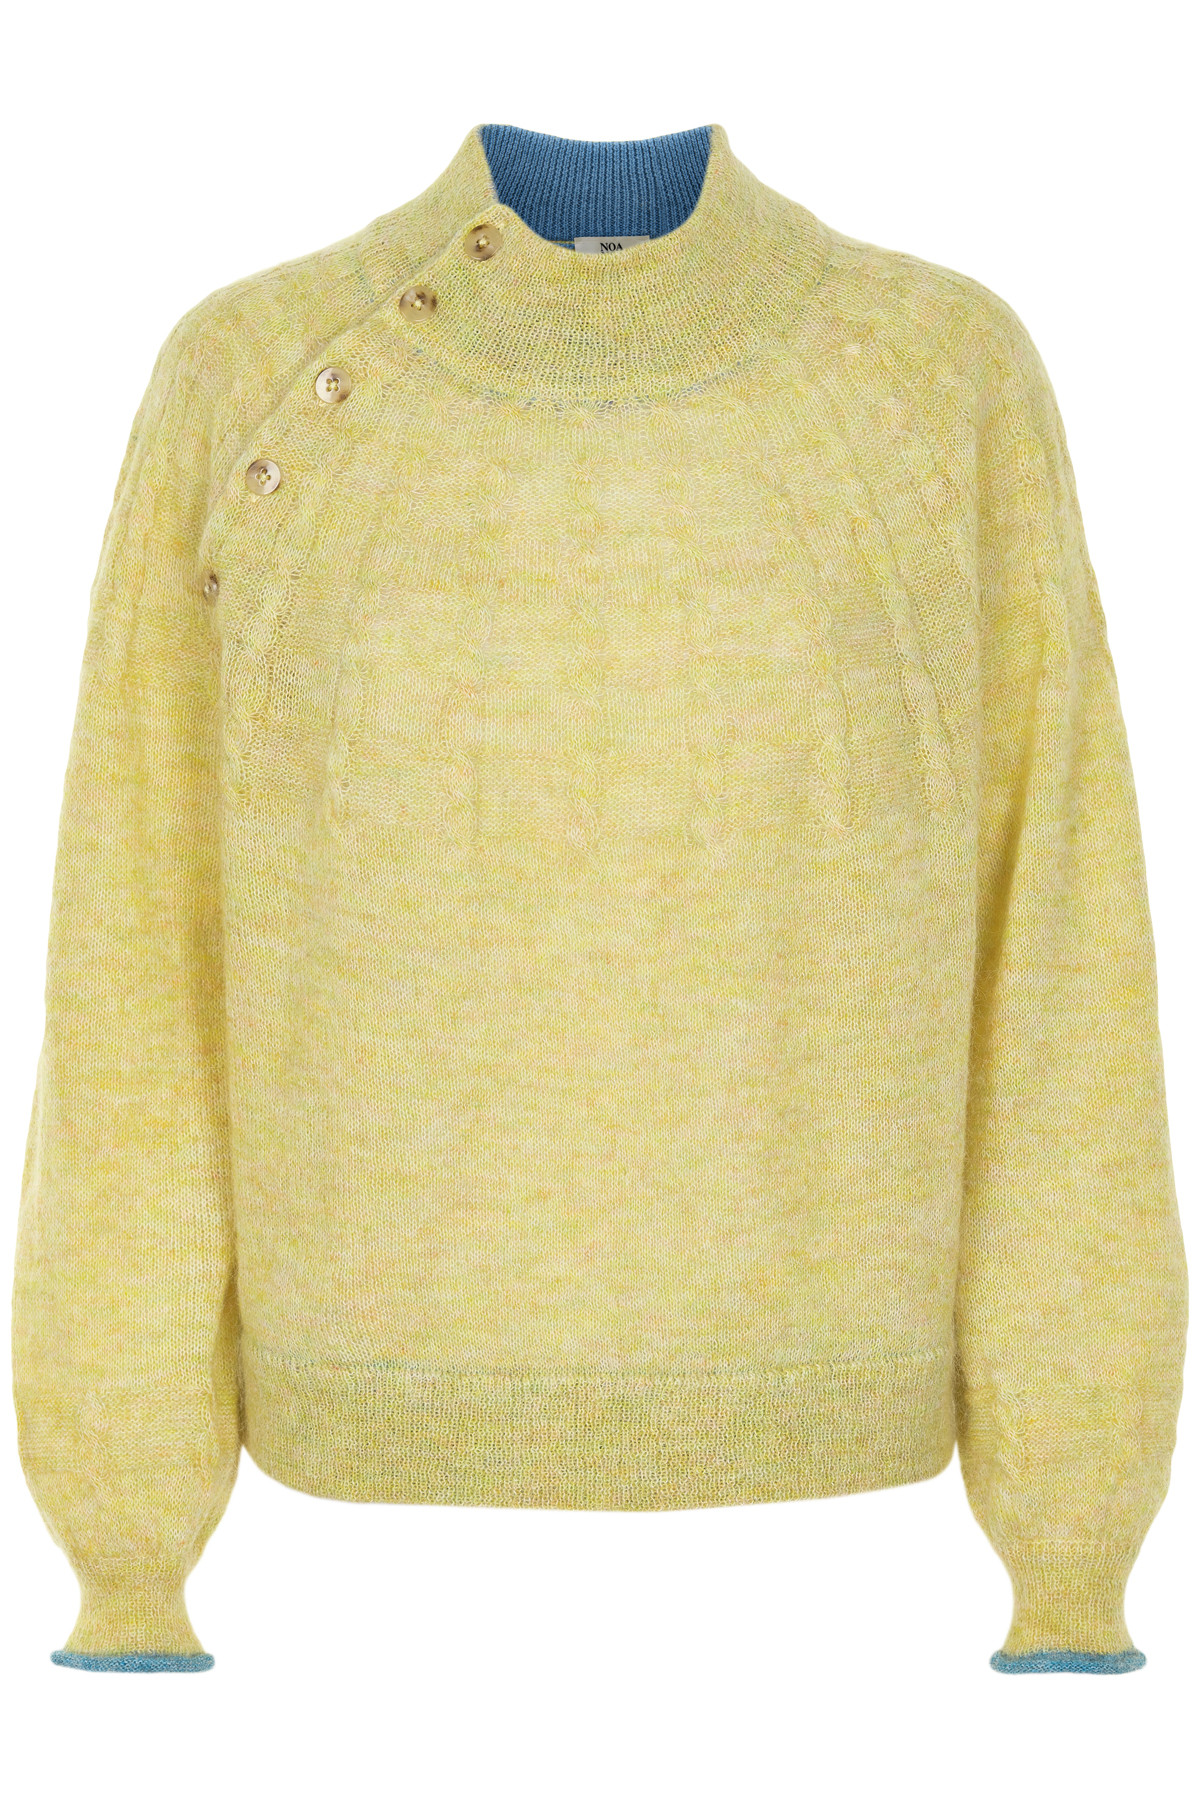 Image of   NOA NOA PULLOVER 1-9614-1 001027 (Yellow, XS)